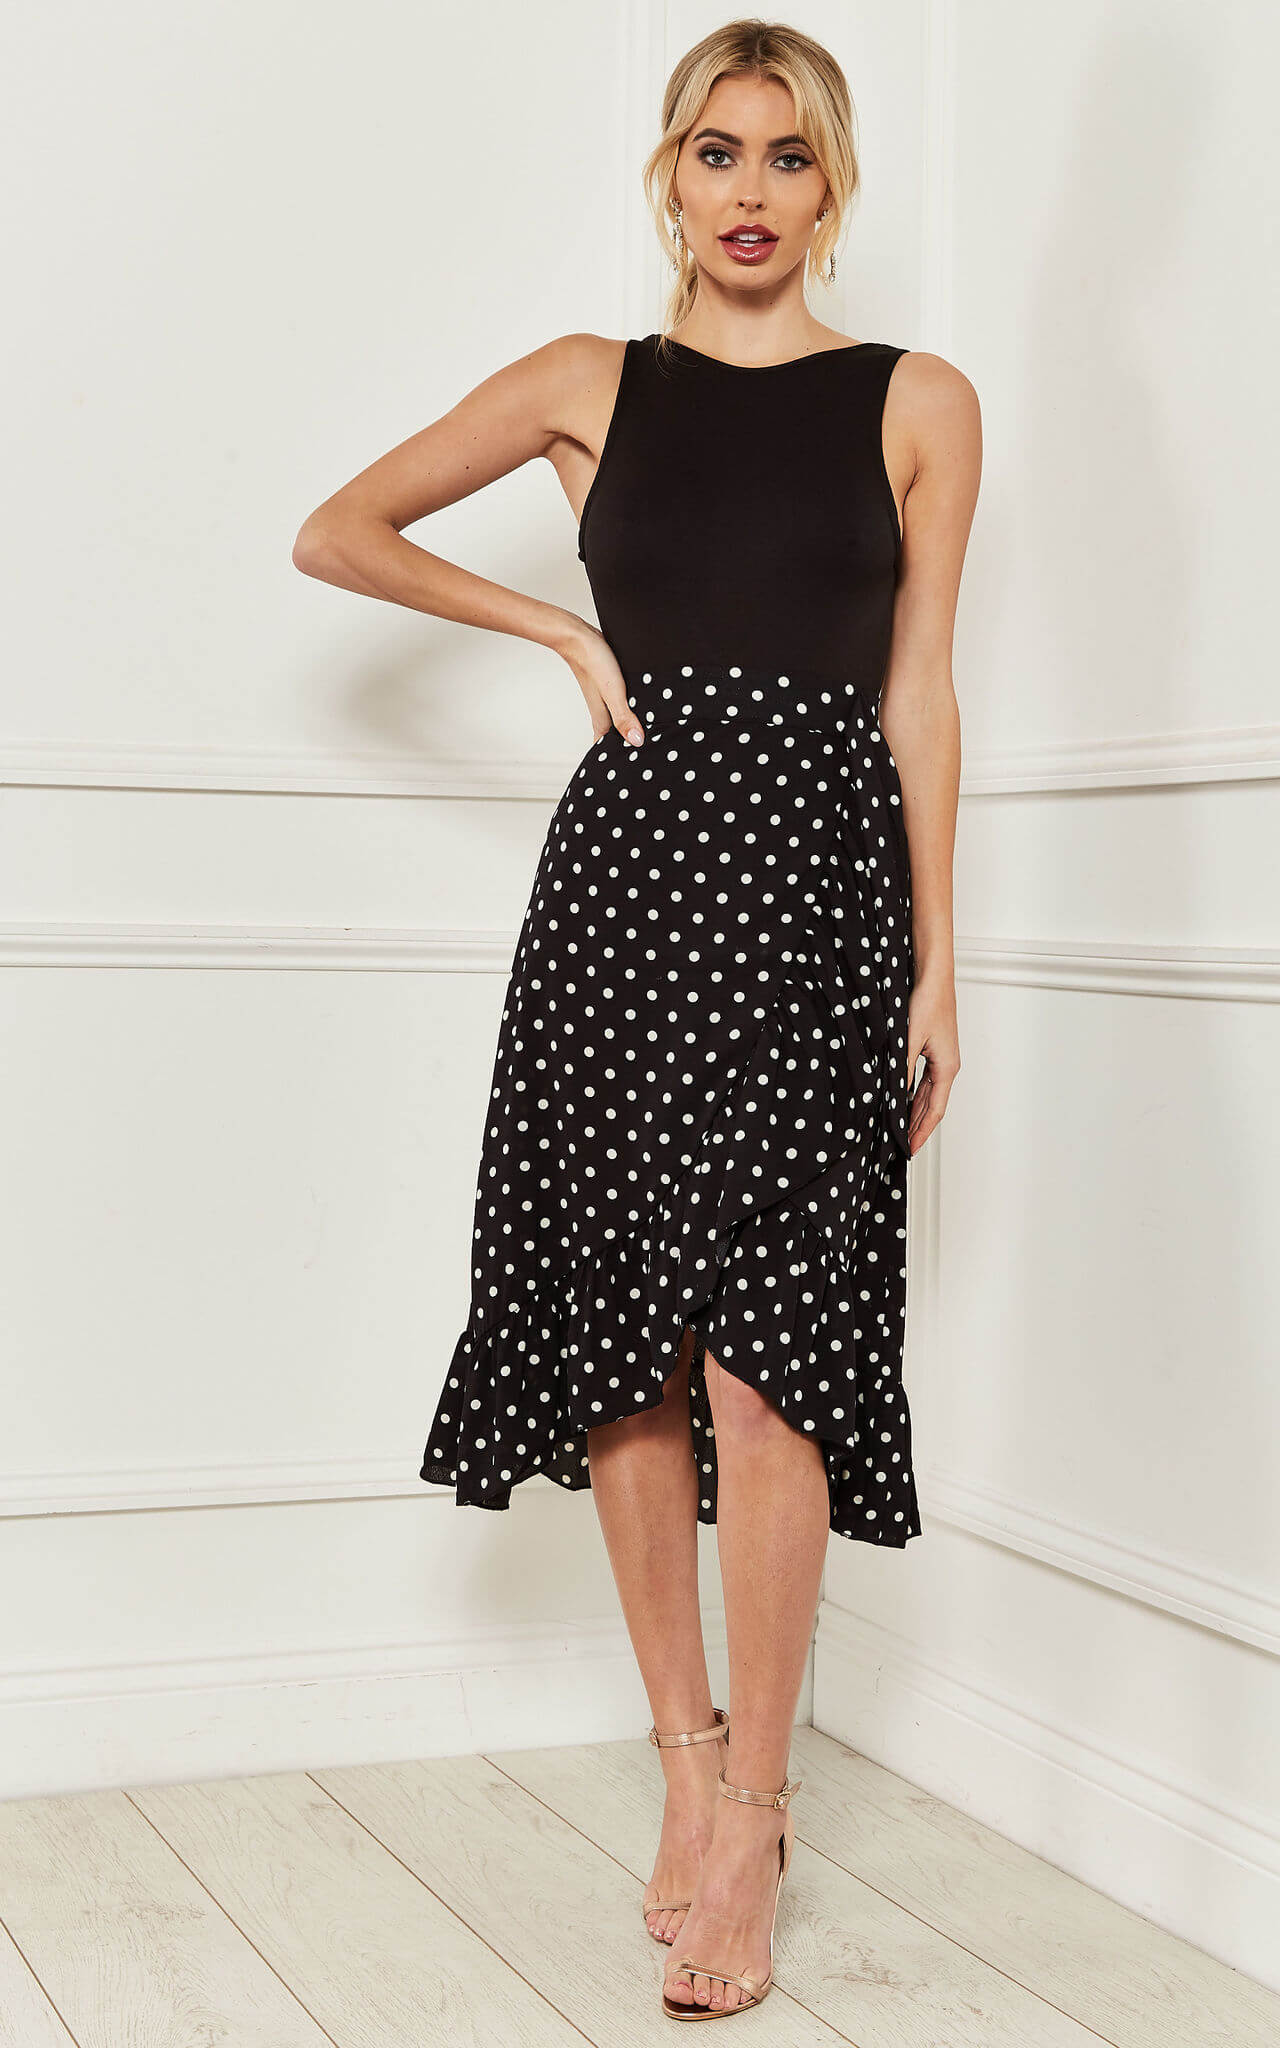 Model wears a black ruffle wrap midi skirt with white polka dots with a black top